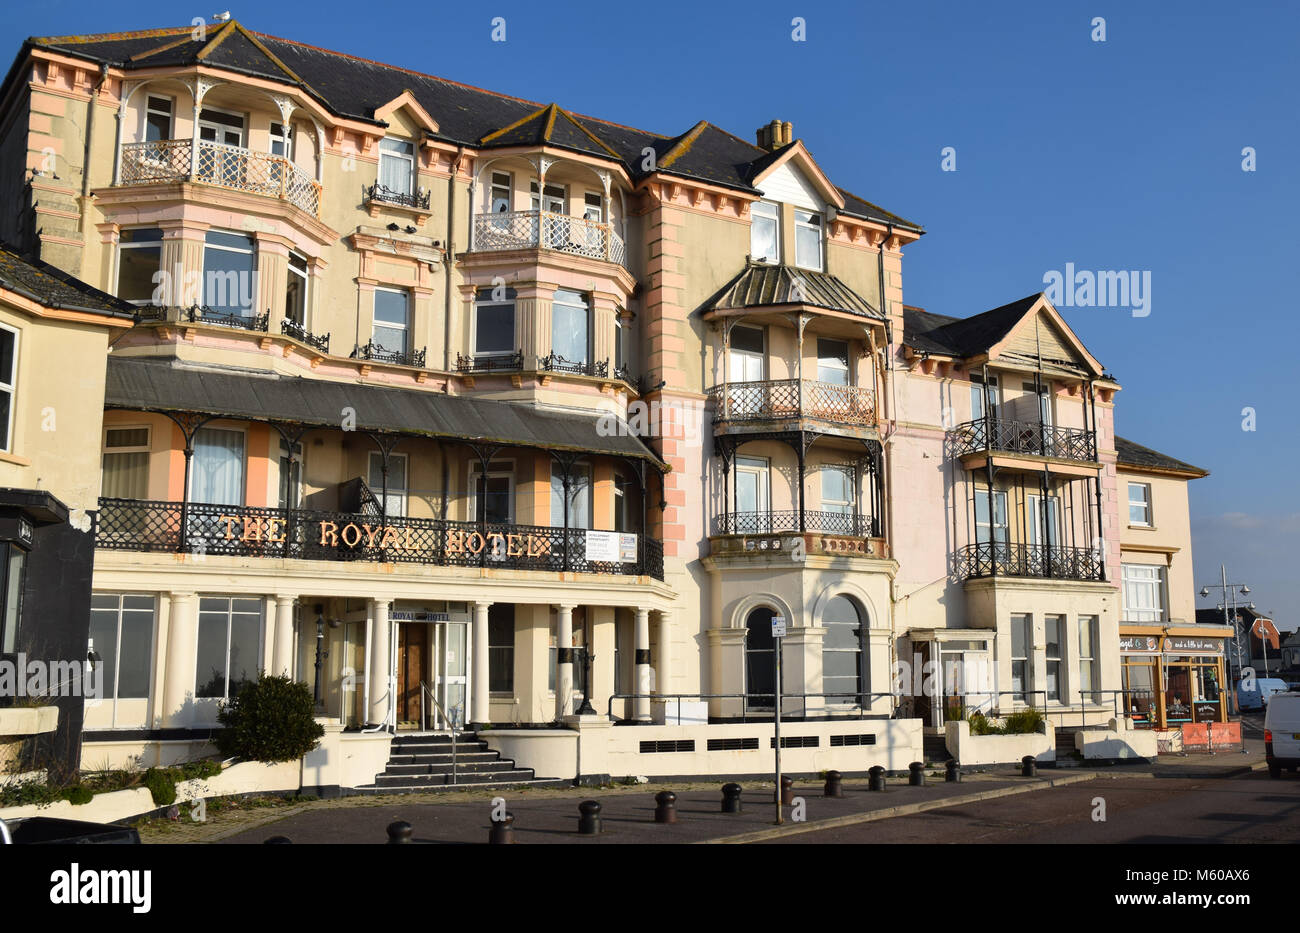 IN NEED OF TLC - THE ROYAL HOTEL, BOGNOR REGIS, A LOVELY BUILDING LET DOWN BY NEGLECT, AND LOOKING A SAD VERSION - Stock Image